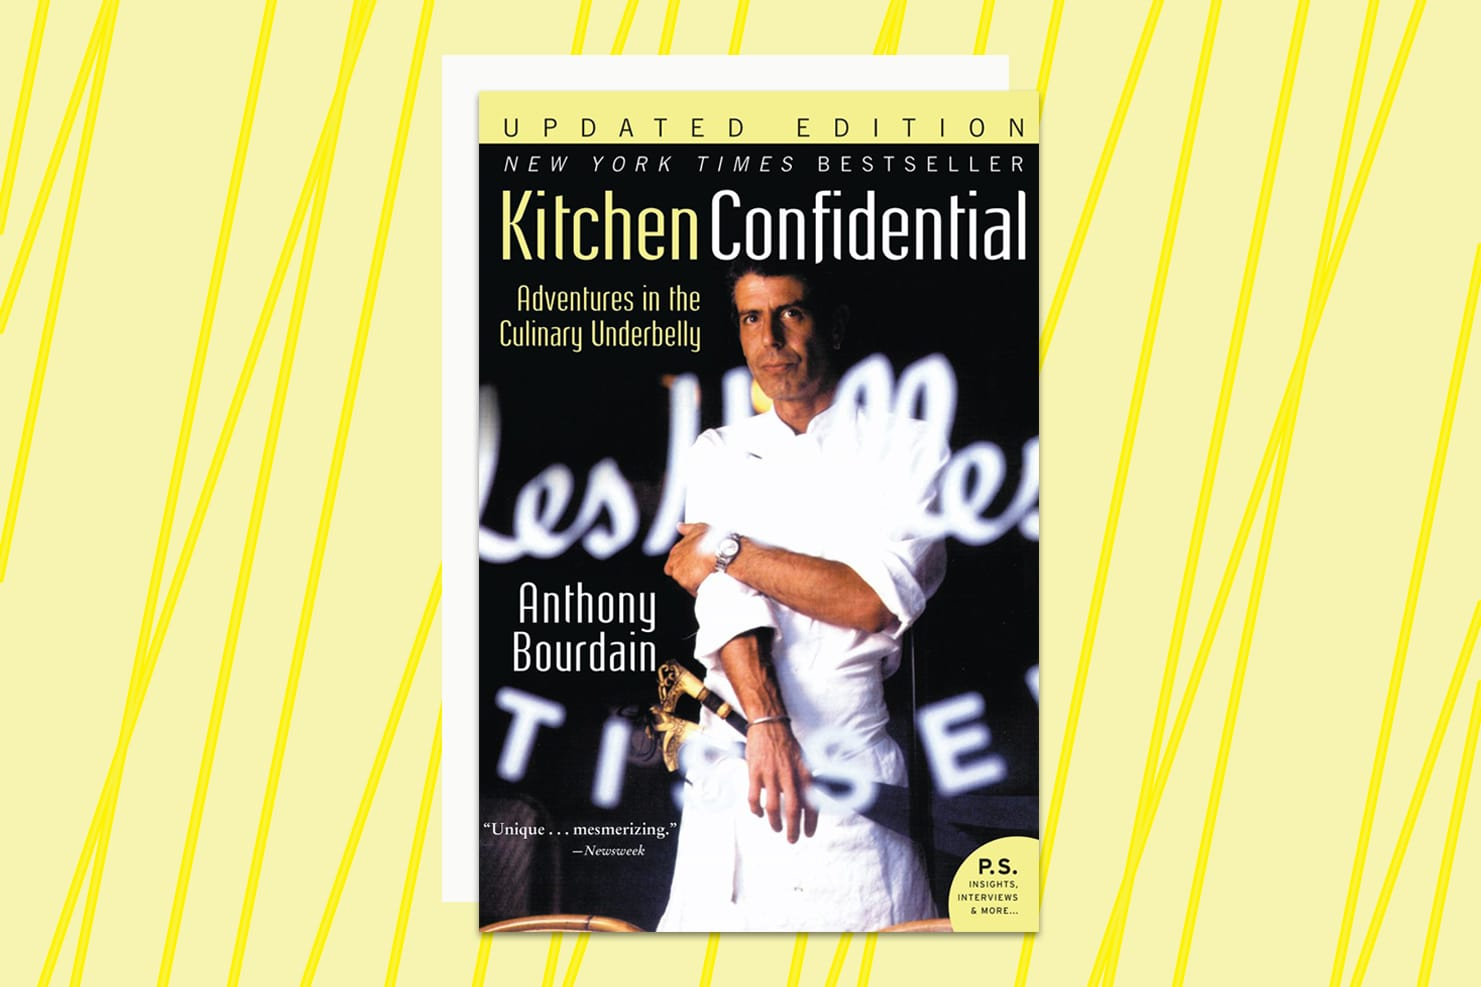 Anthony bourdains editor on the making of kitchen confidential